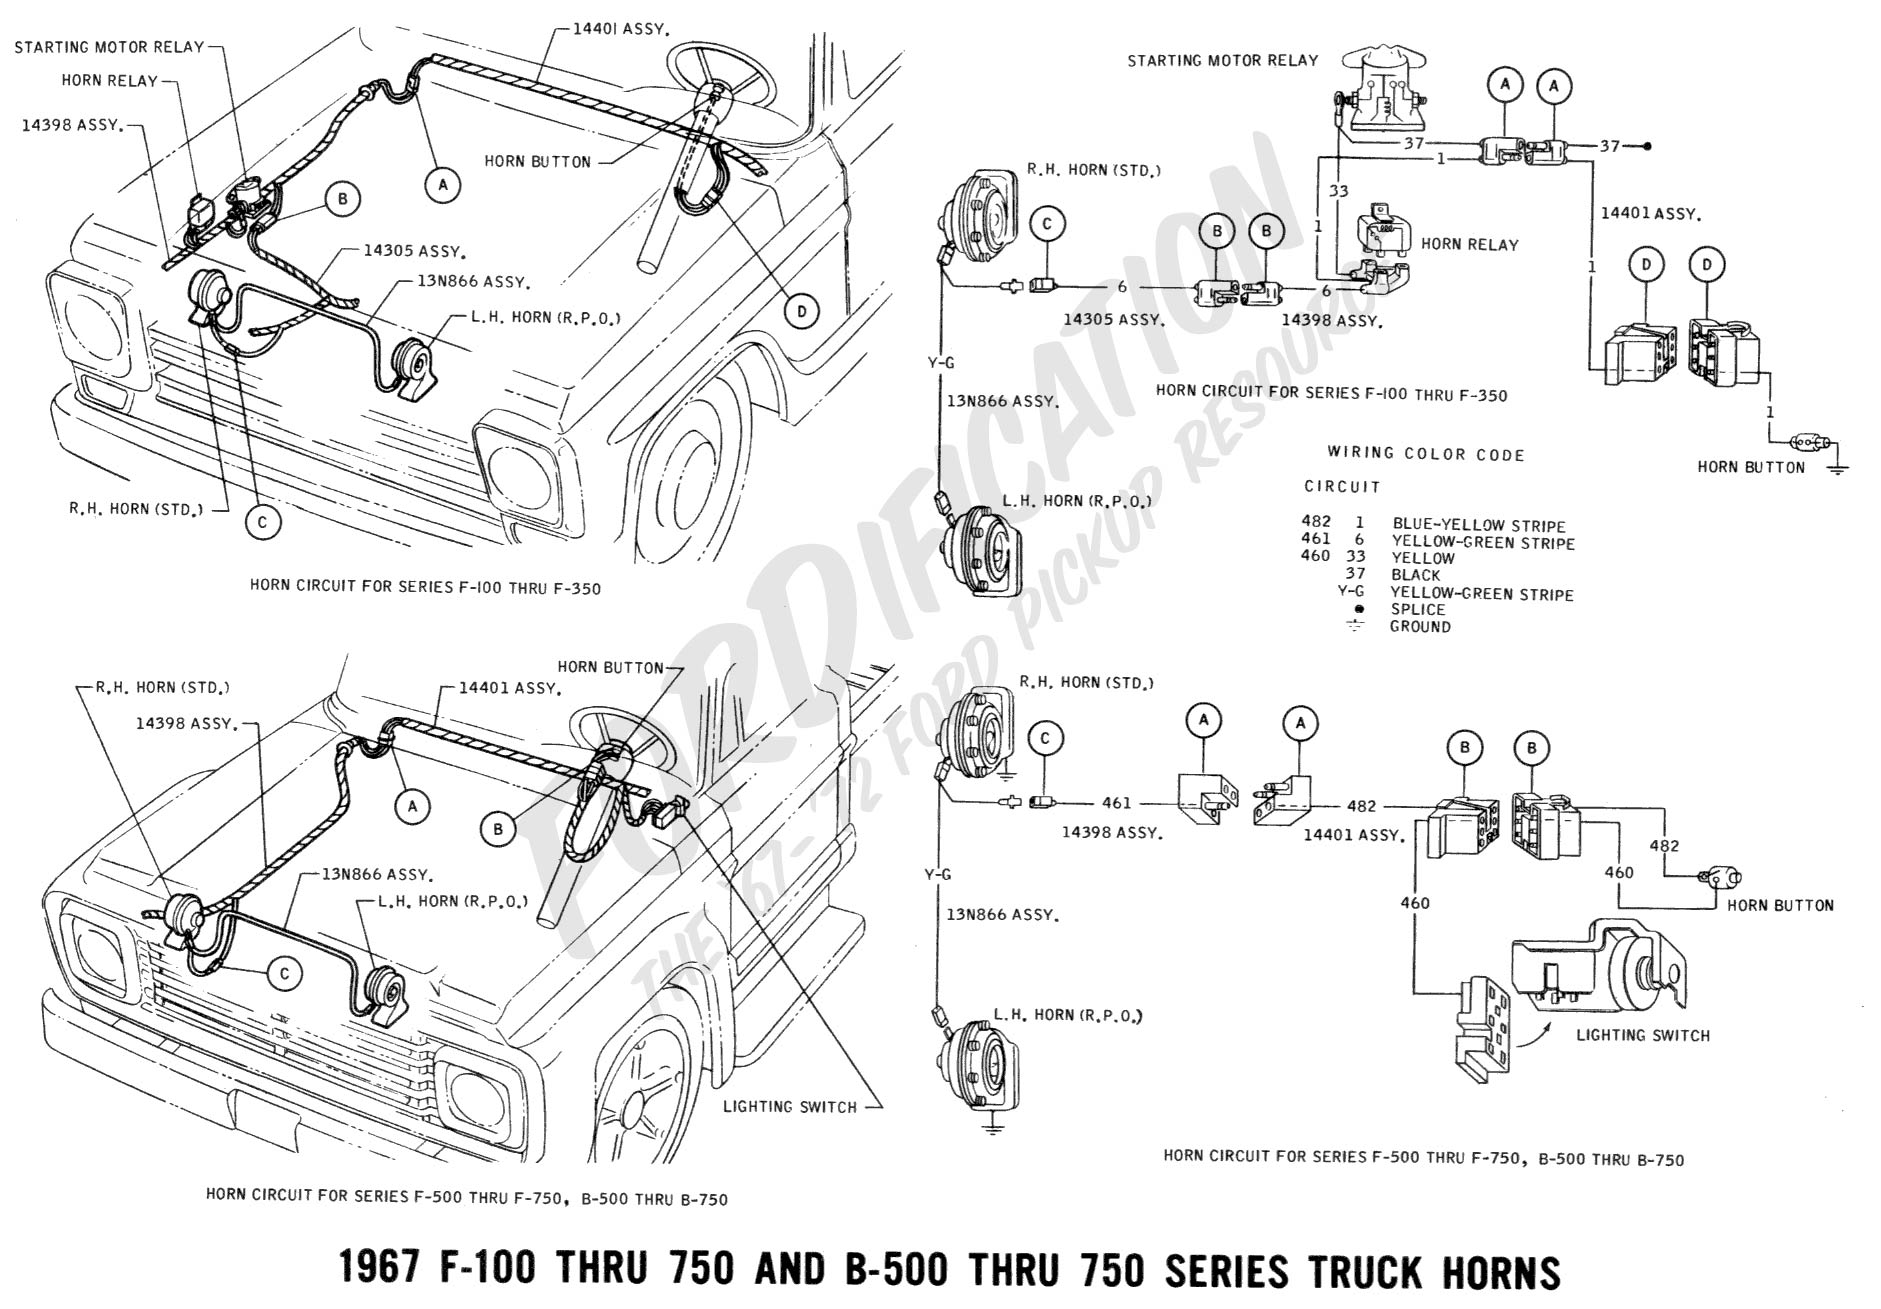 Wiring Diagram For 67 Ford Galaxie 500